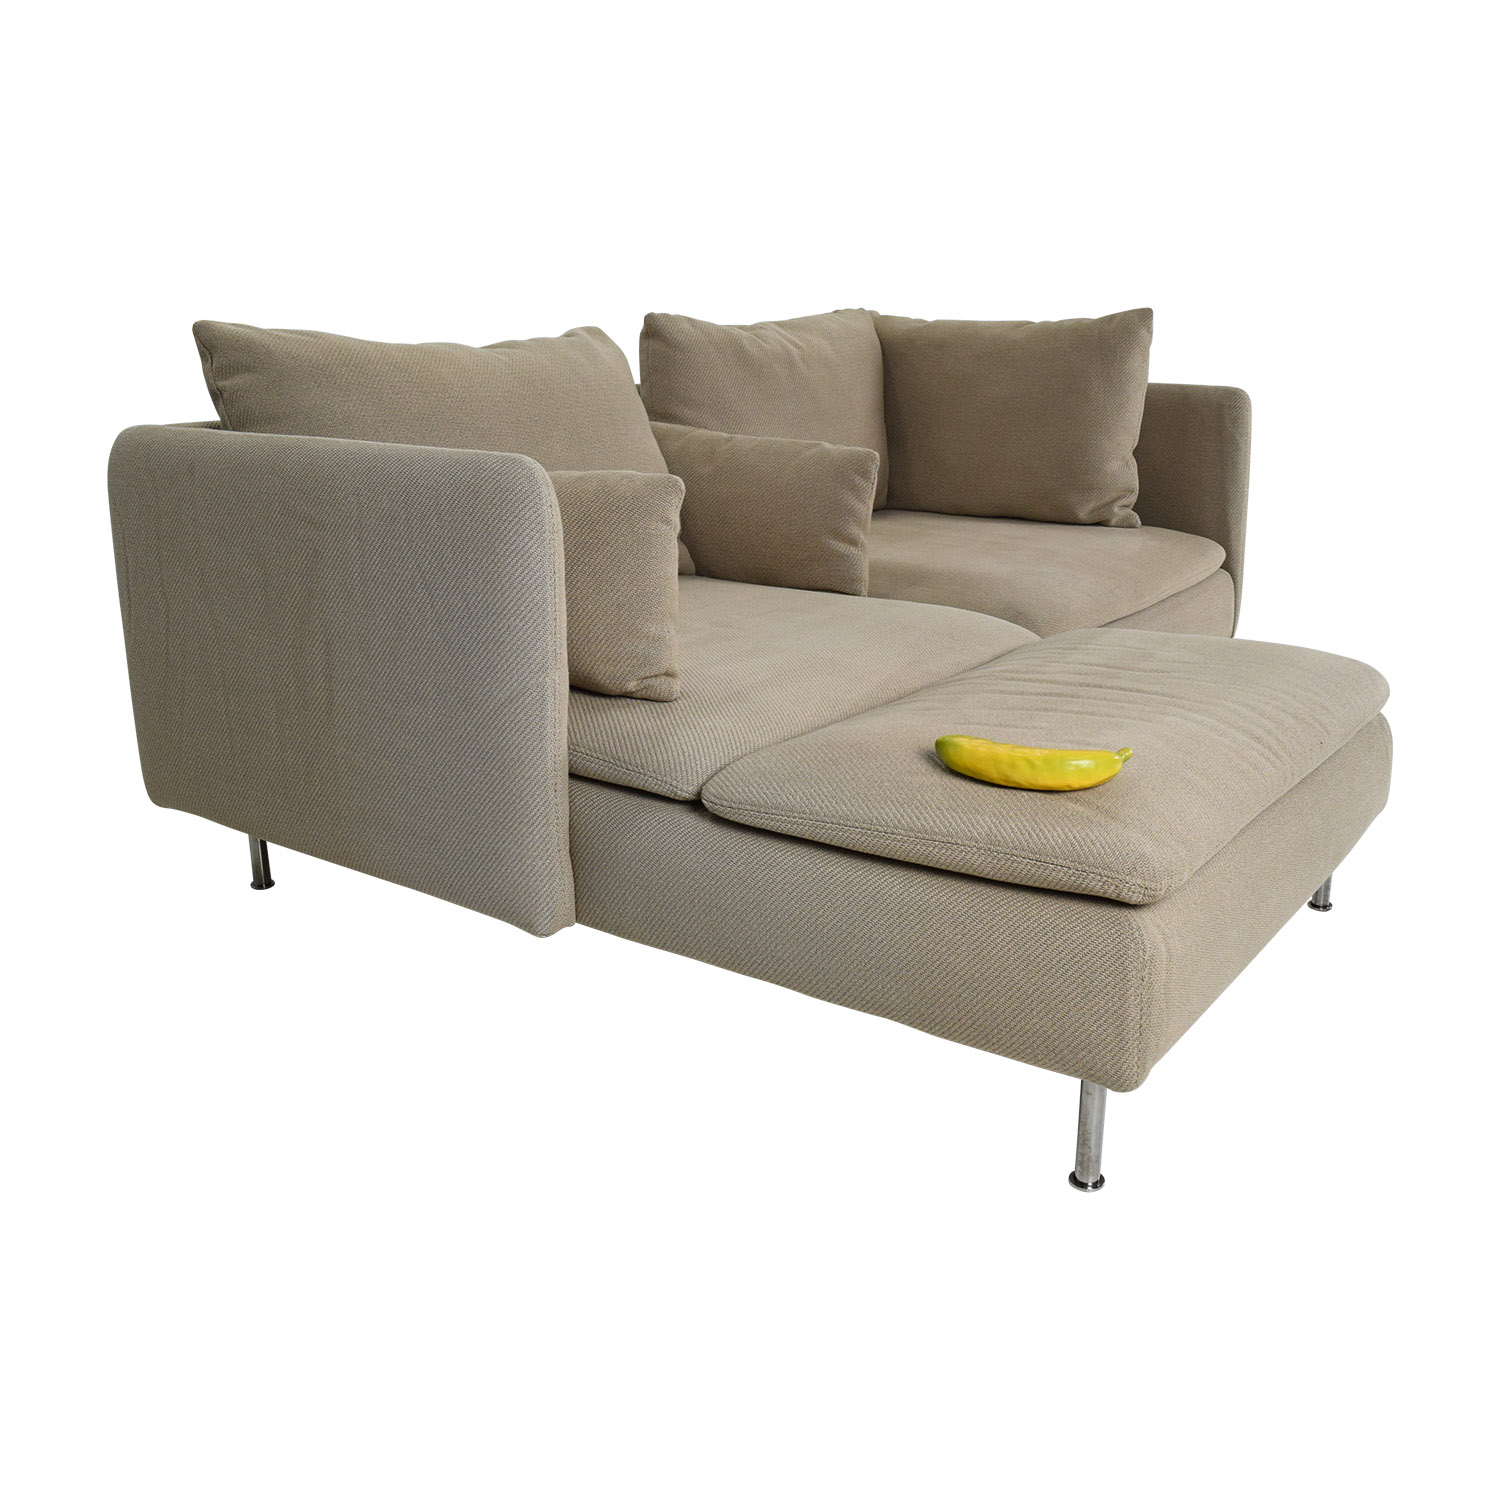 Ikea second hand furniture home design for Second hand sofas